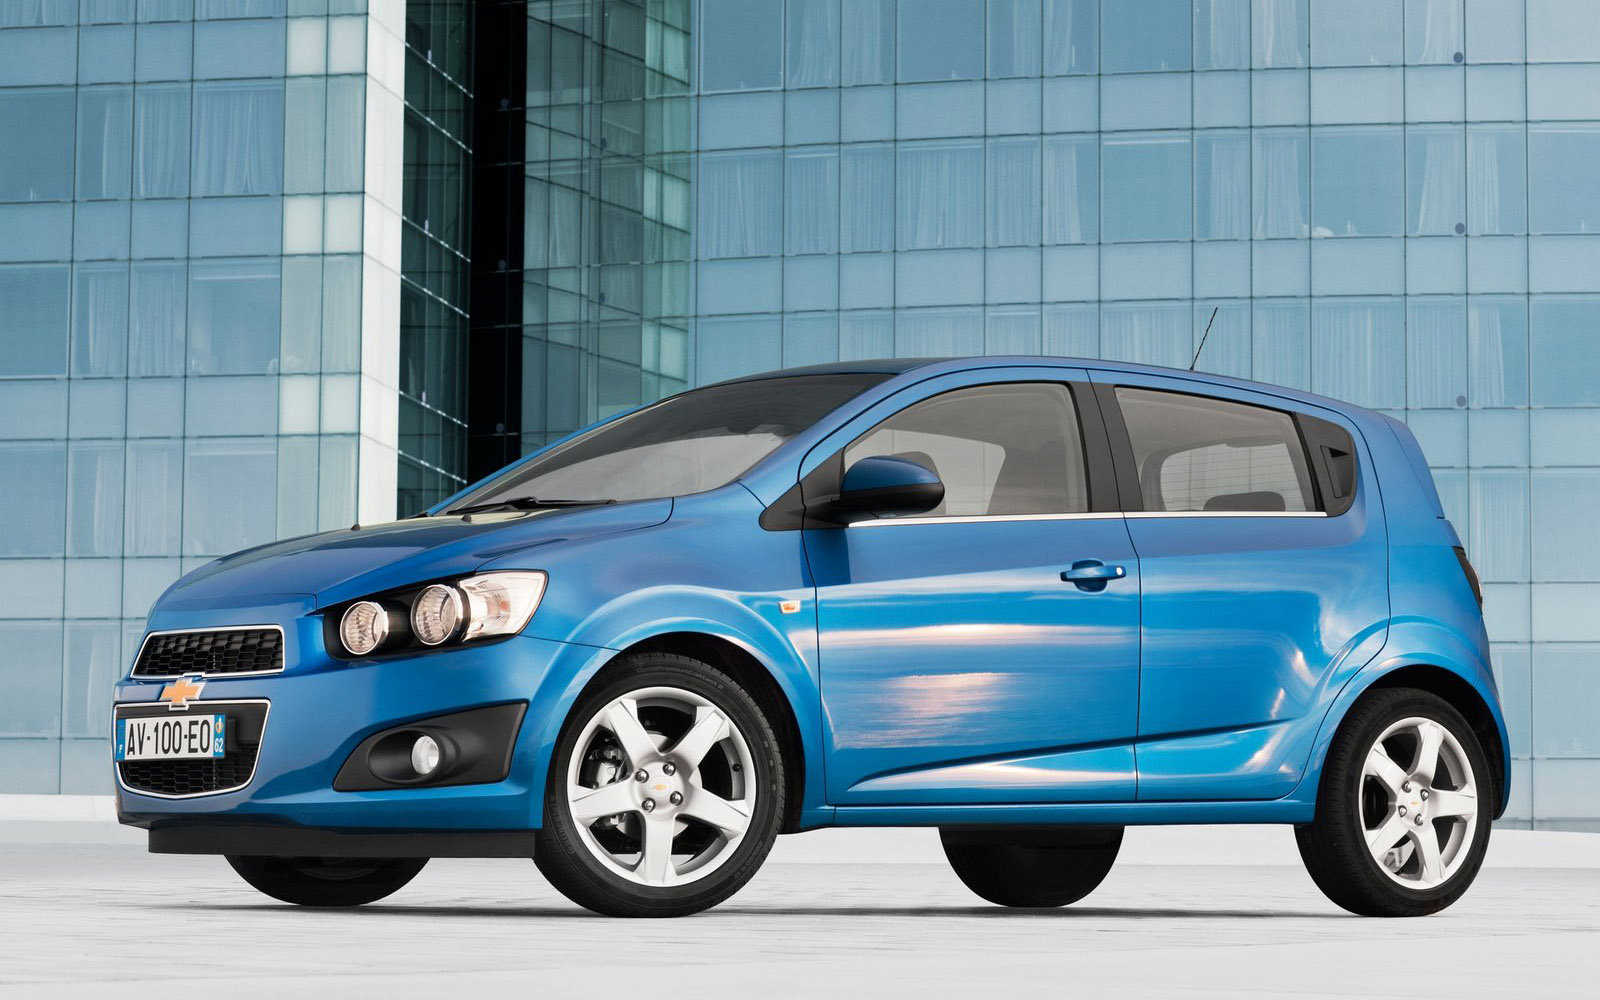 hd wallpapers 2011 chevrolet aveo sedan wallpapers. Black Bedroom Furniture Sets. Home Design Ideas